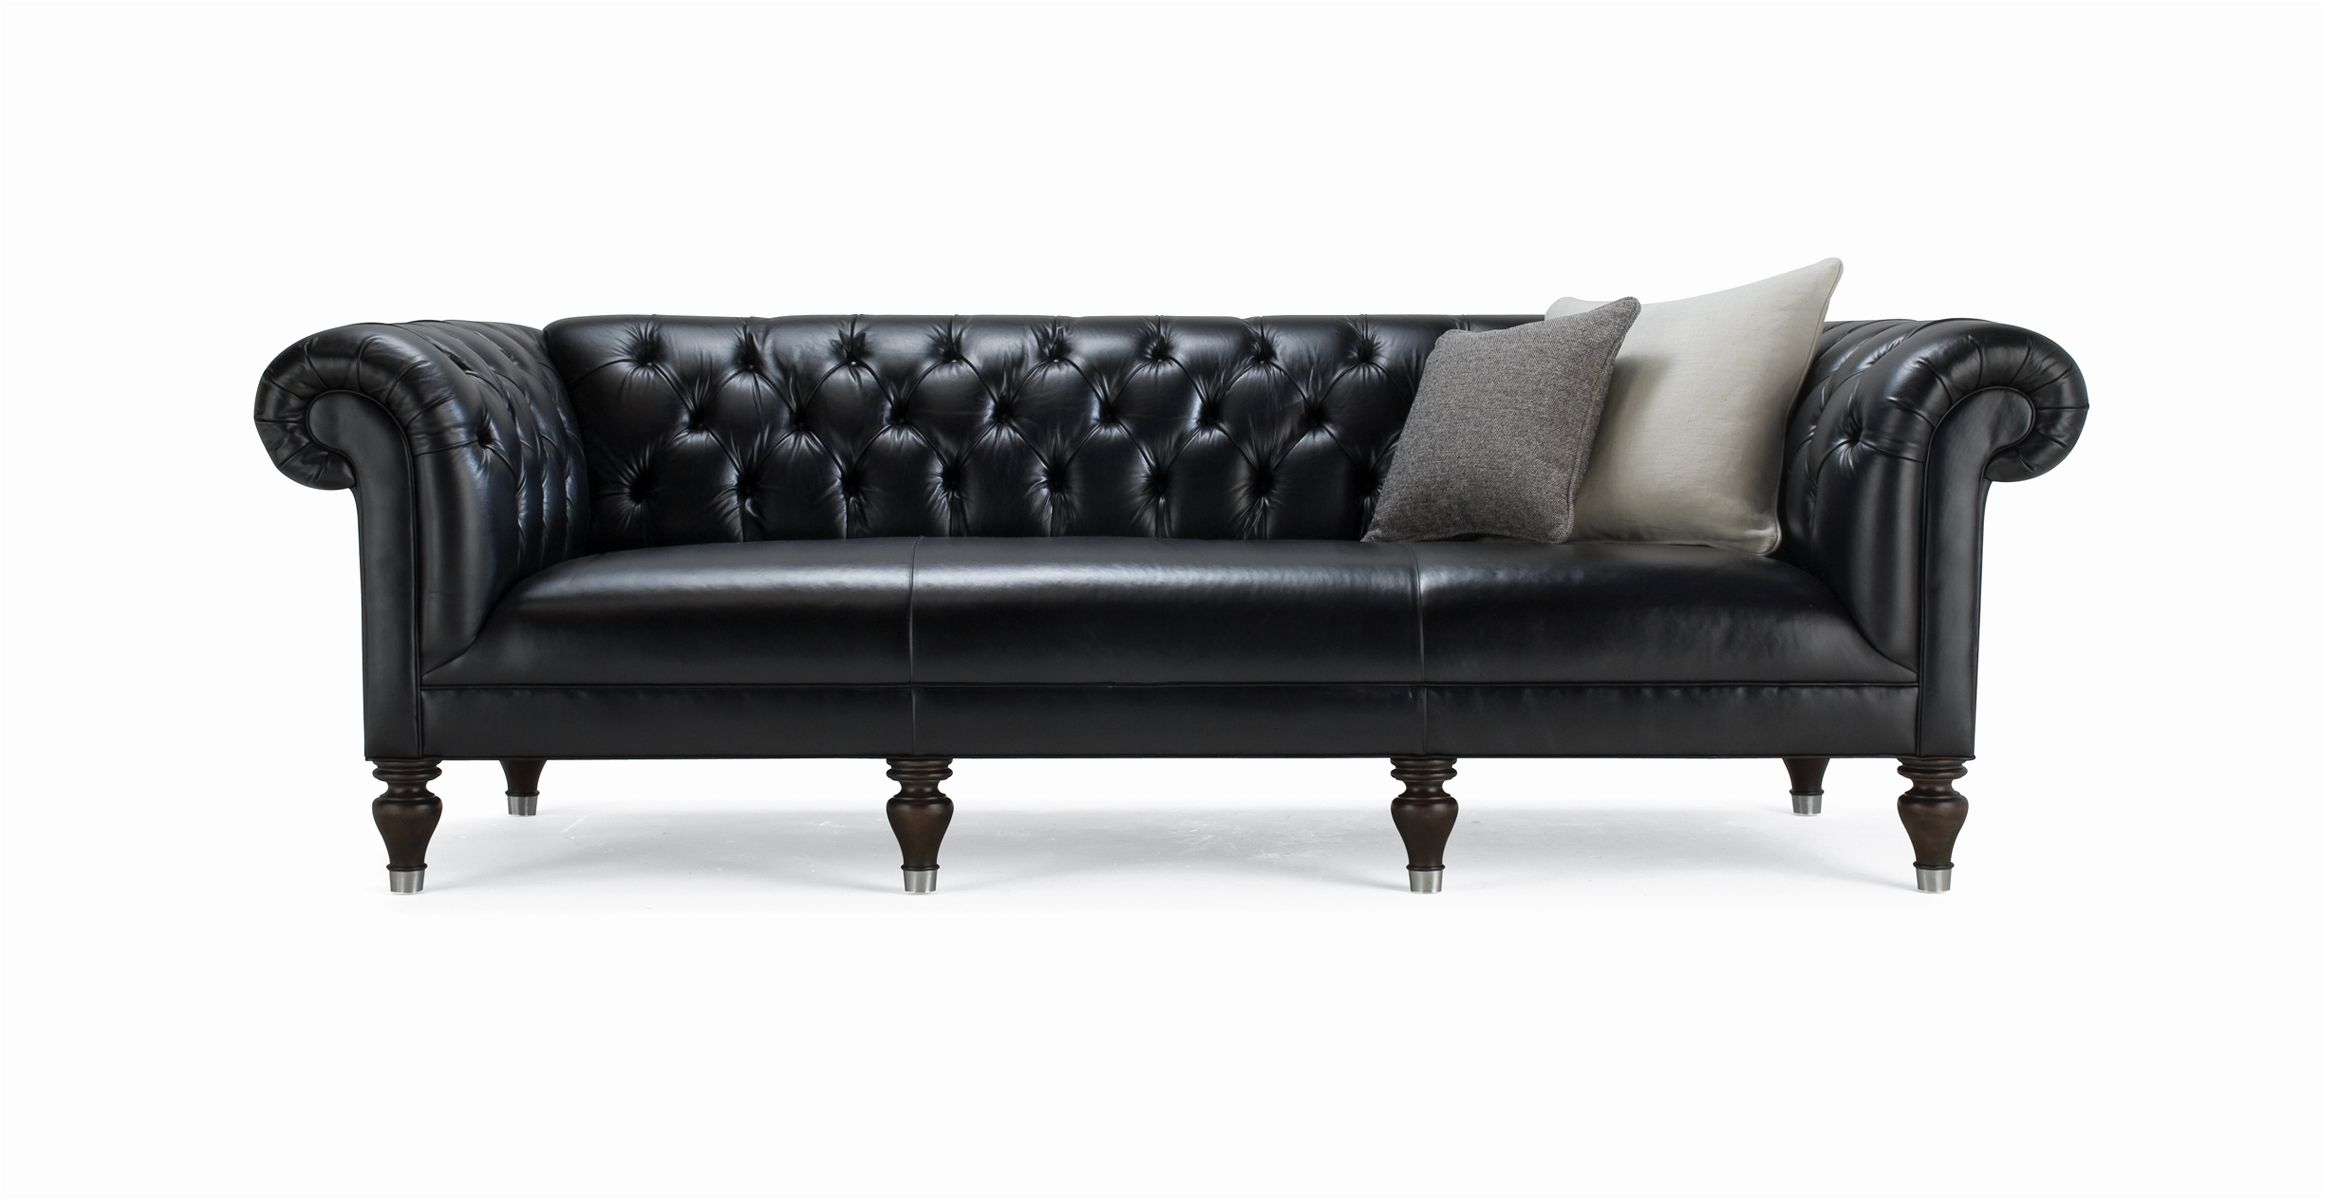 pin by homysofa on apartment sofa tufted leather sofa leather rh pinterest com 100 inch couch 100 inch sectional sofa